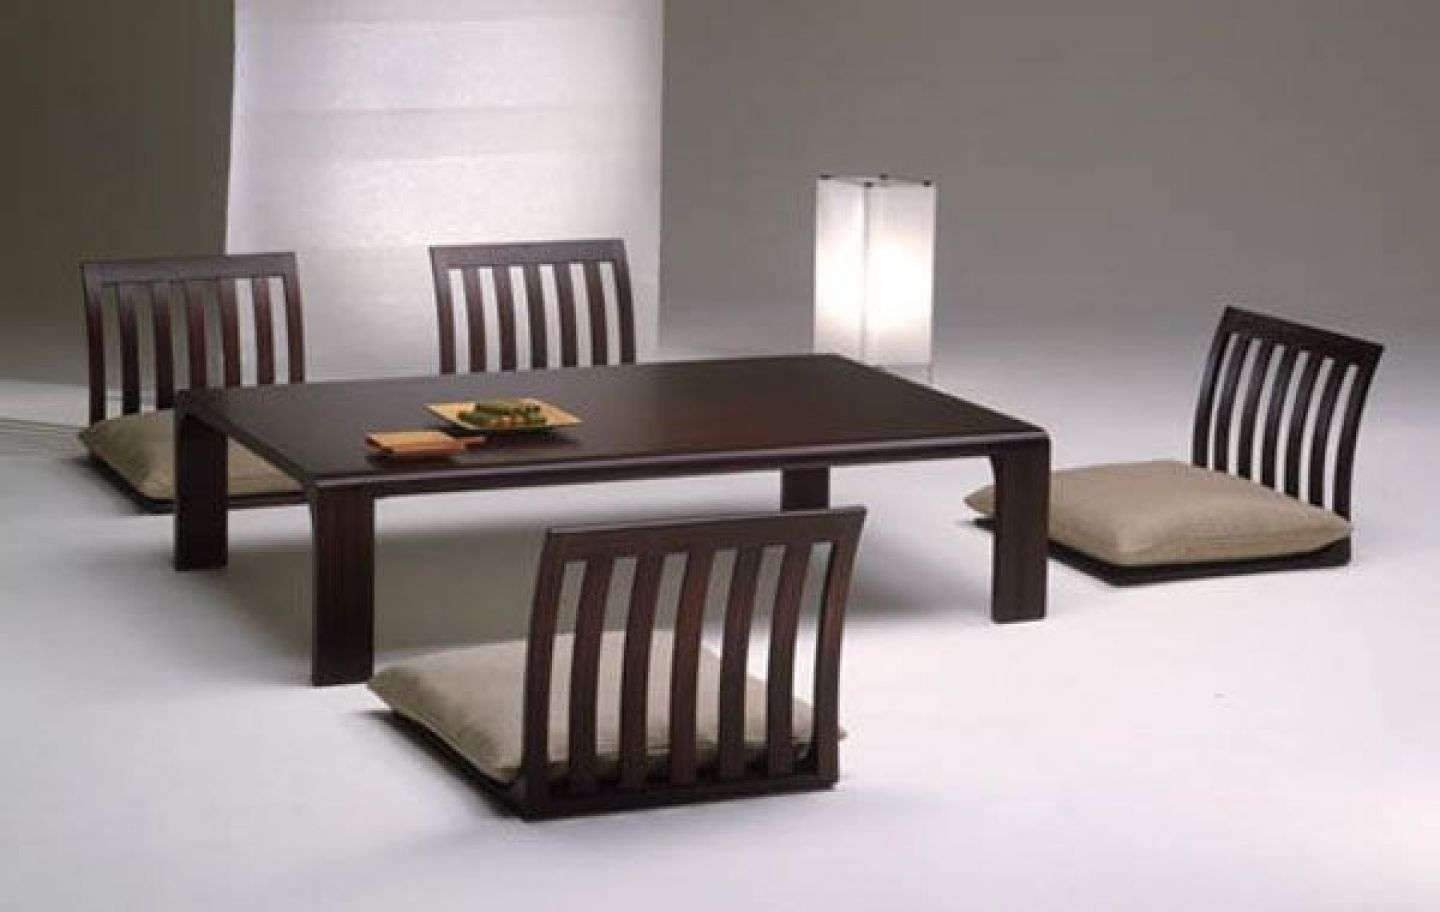 Traditional Japanese Dining Room Furniture Design 3 Minimalist Dining Room Furniture Dining Room Furniture Design